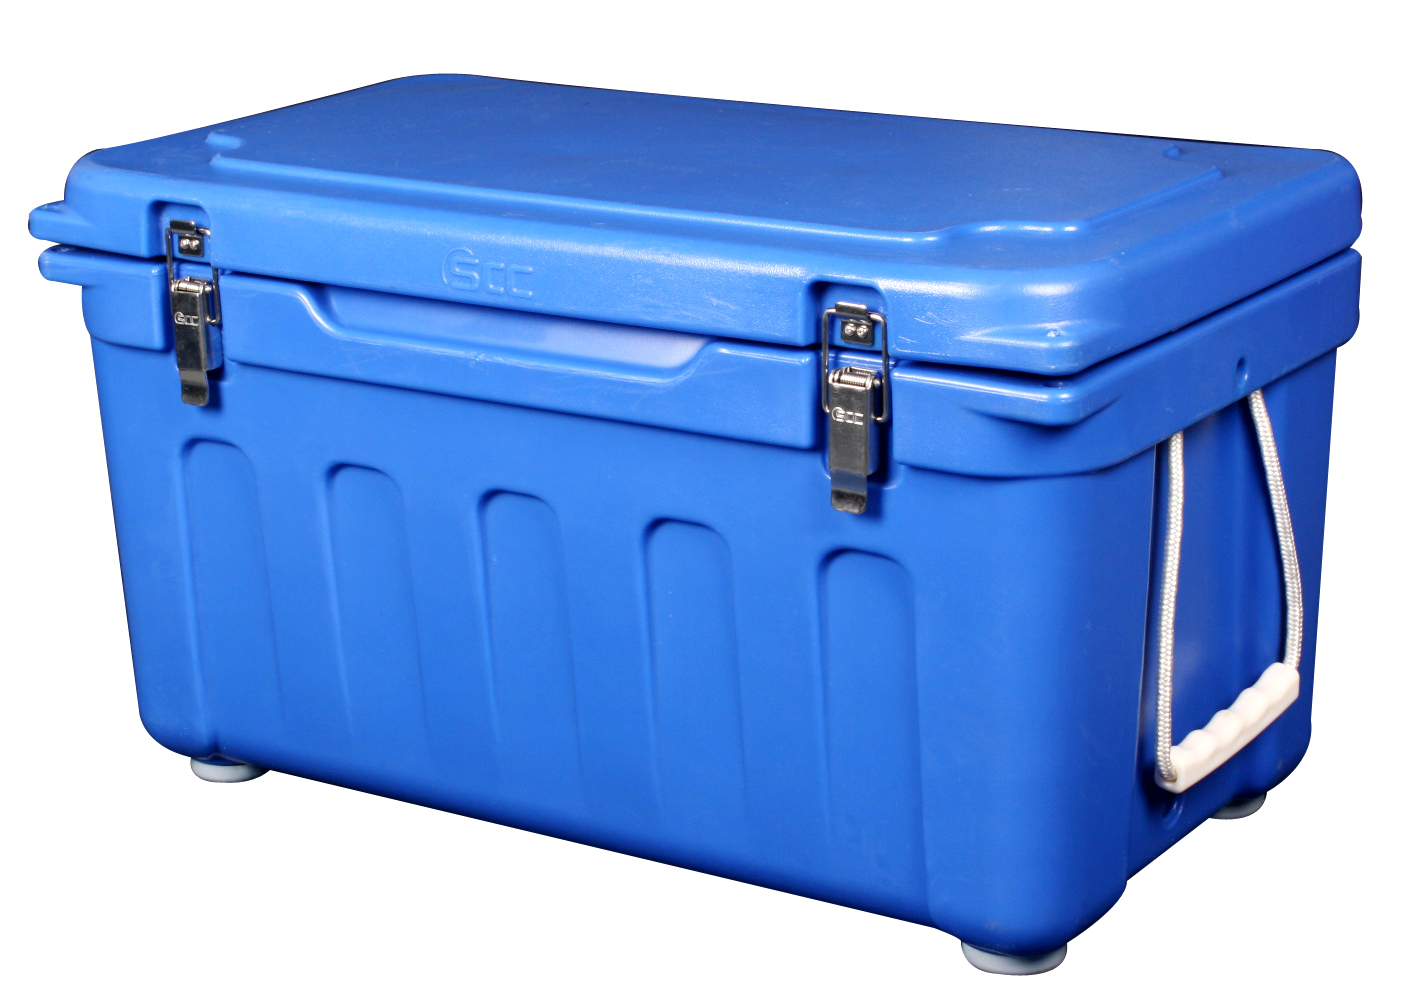 80L Insulated cooler box SB1-A80